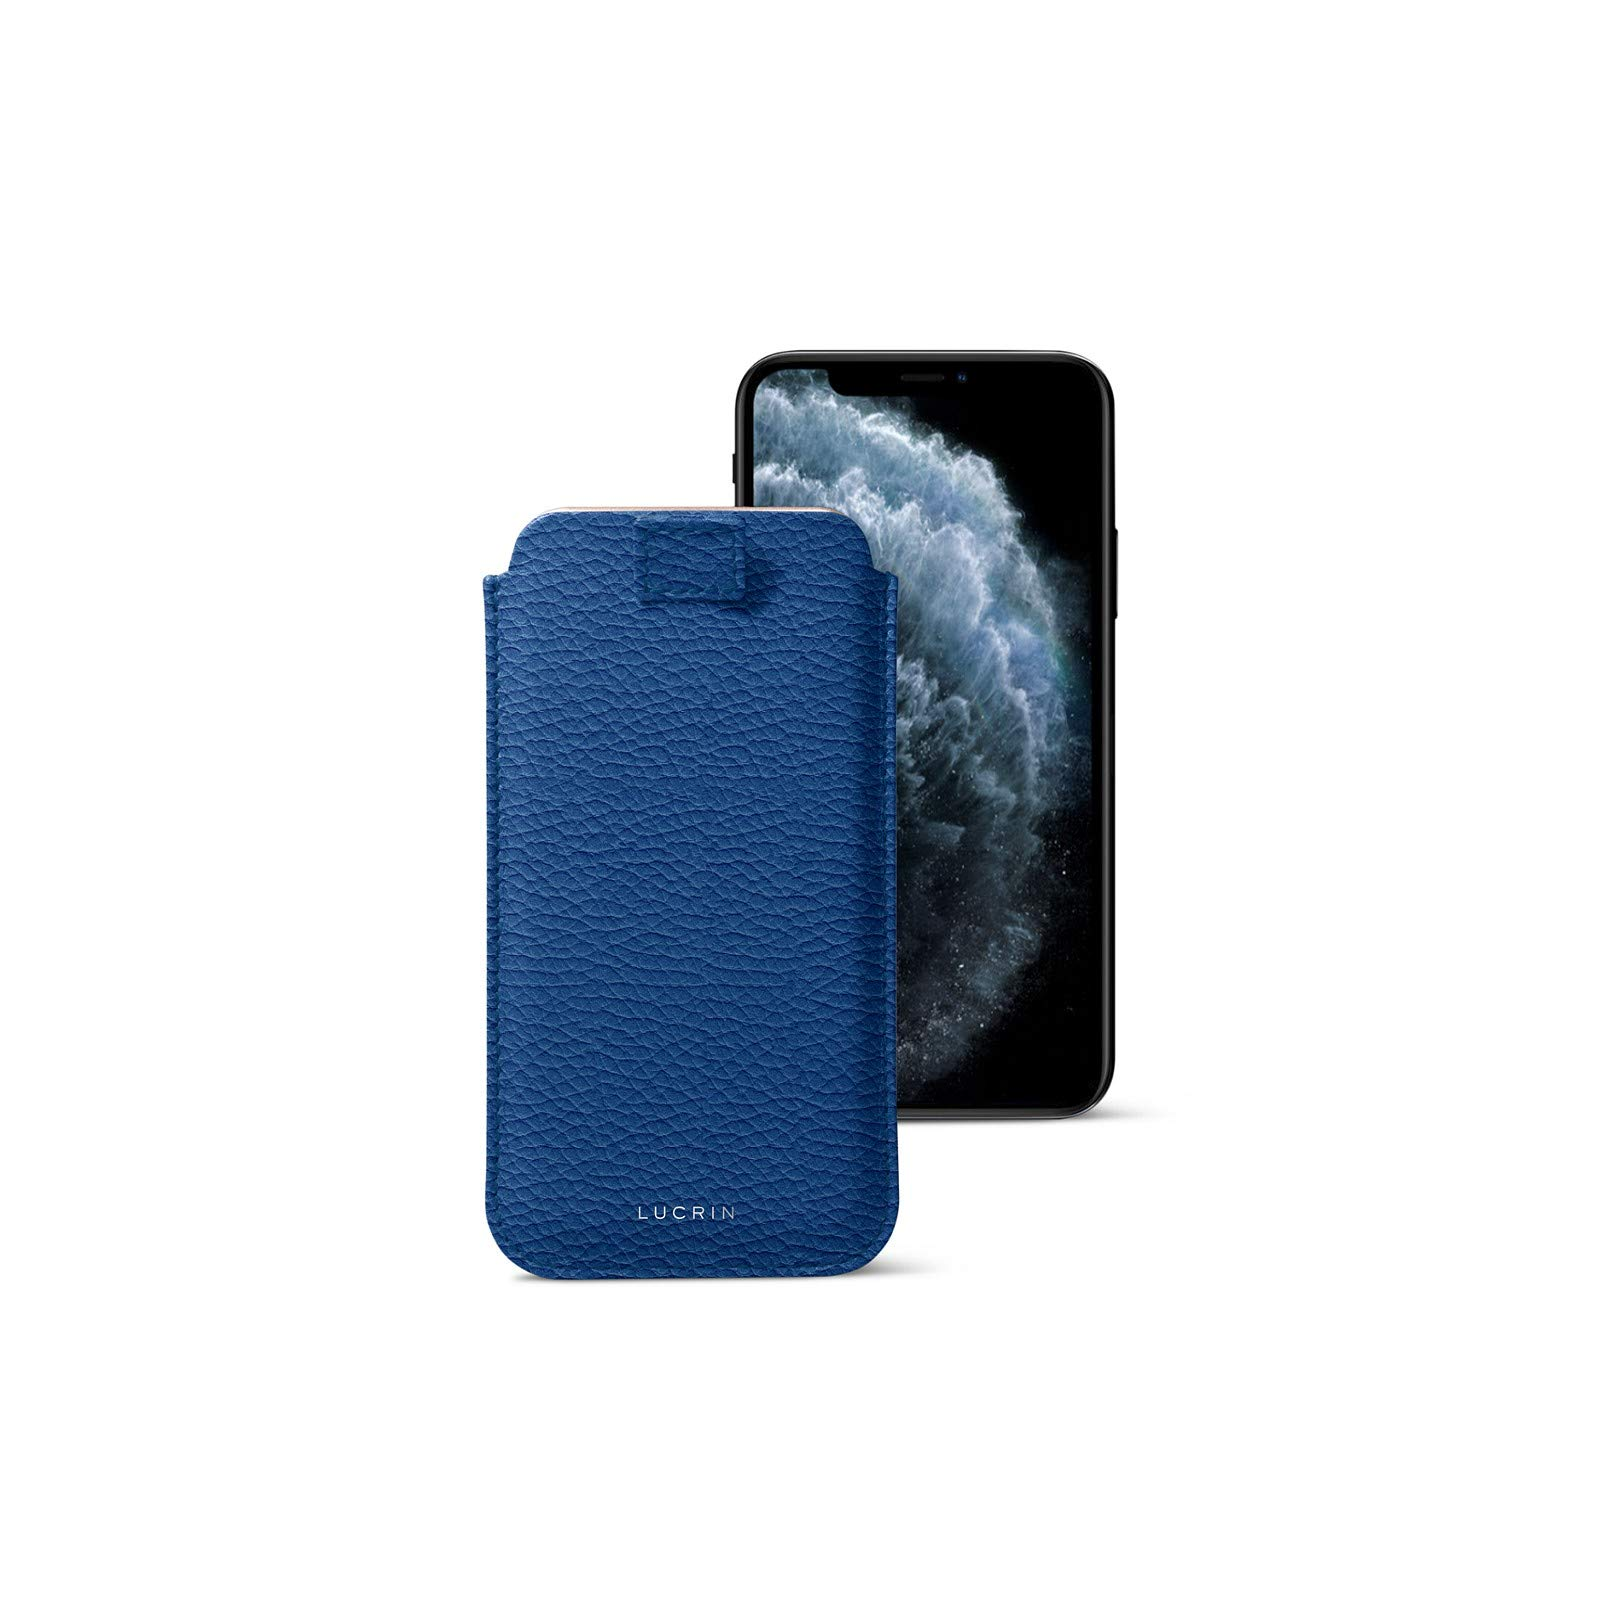 Lucrin - Pull-Up Strap Case Sleeve Cover Compatible with iPhone 11 Pro Max/XS Max/ 8 Plus and Wireless Charging - Royal Blue - Granulated Leather by Lucrin